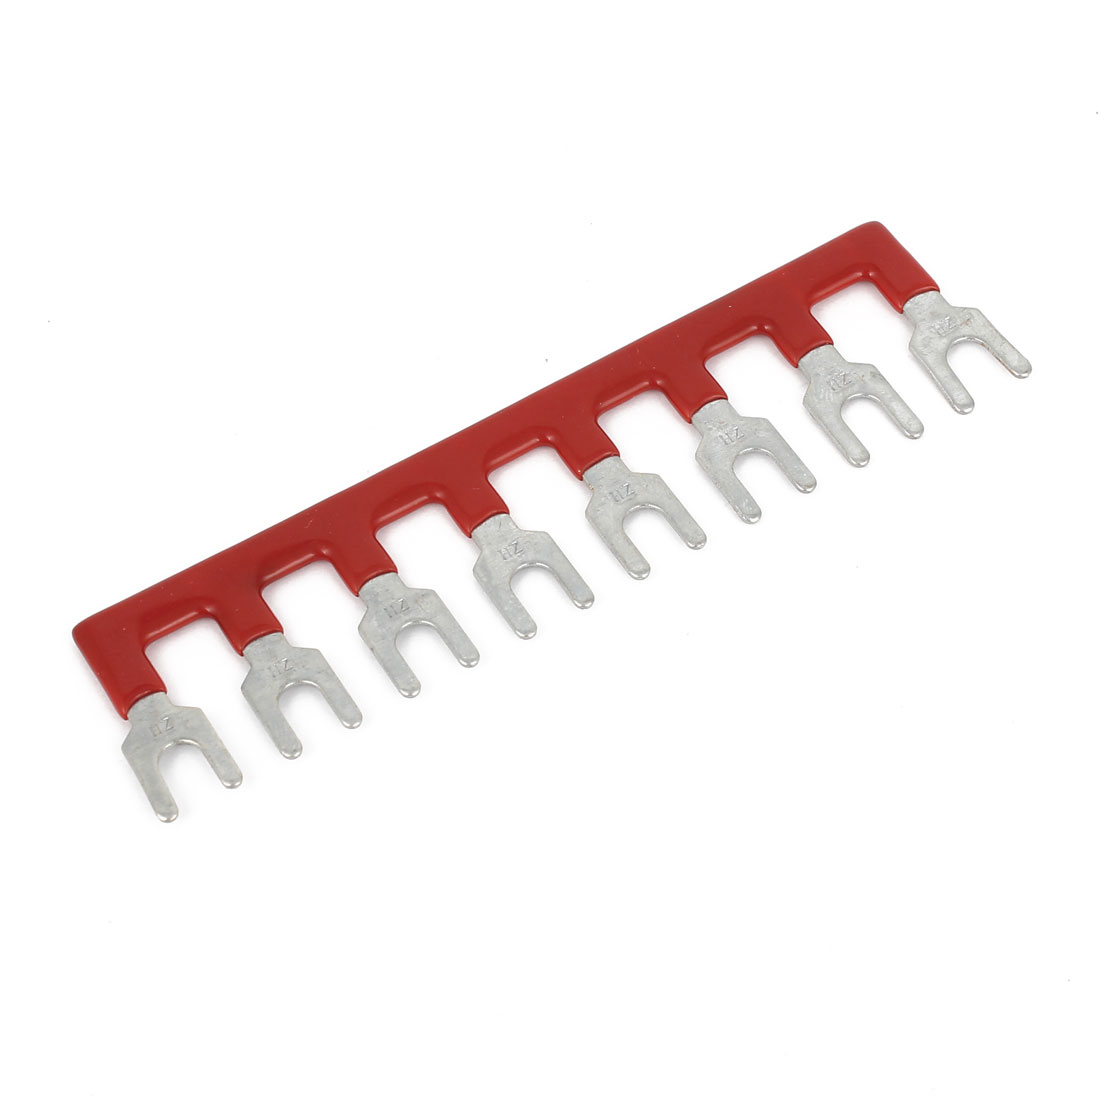 400V 10A 8 Positions Pre Insulated Terminal Stripes Block Barrier Stripe Red